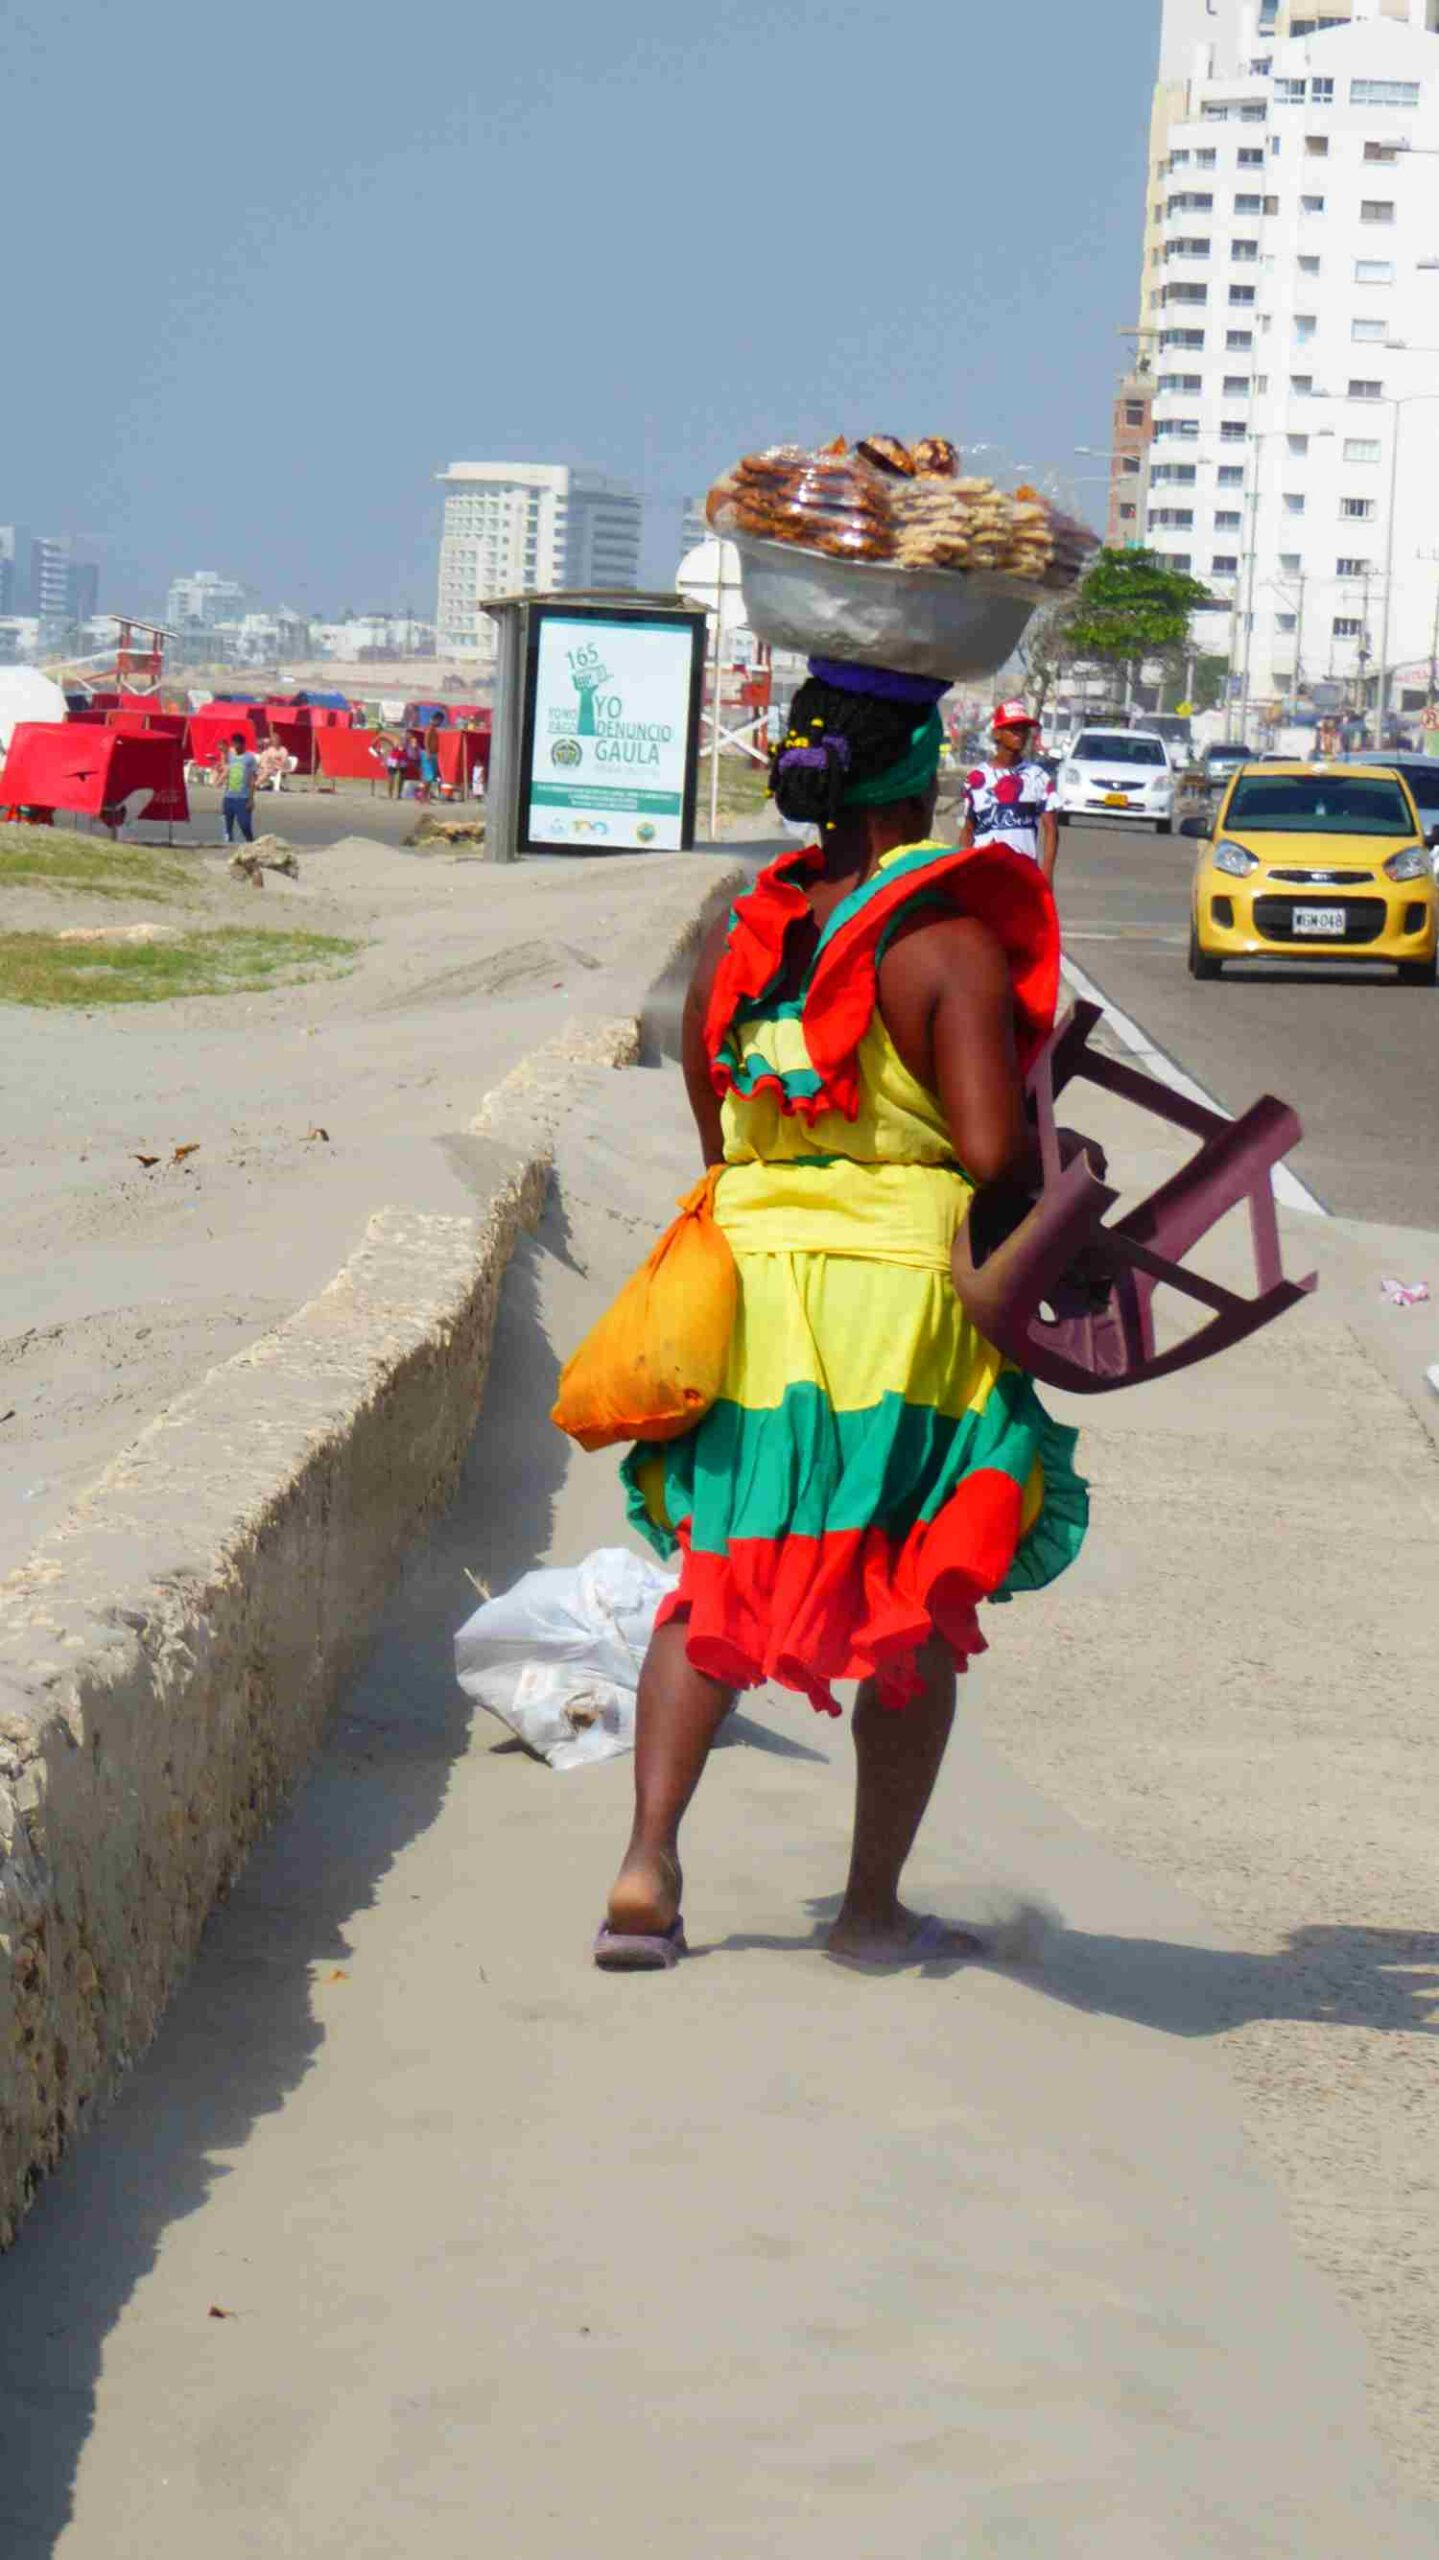 a colorful lady at the beach in Cartagena